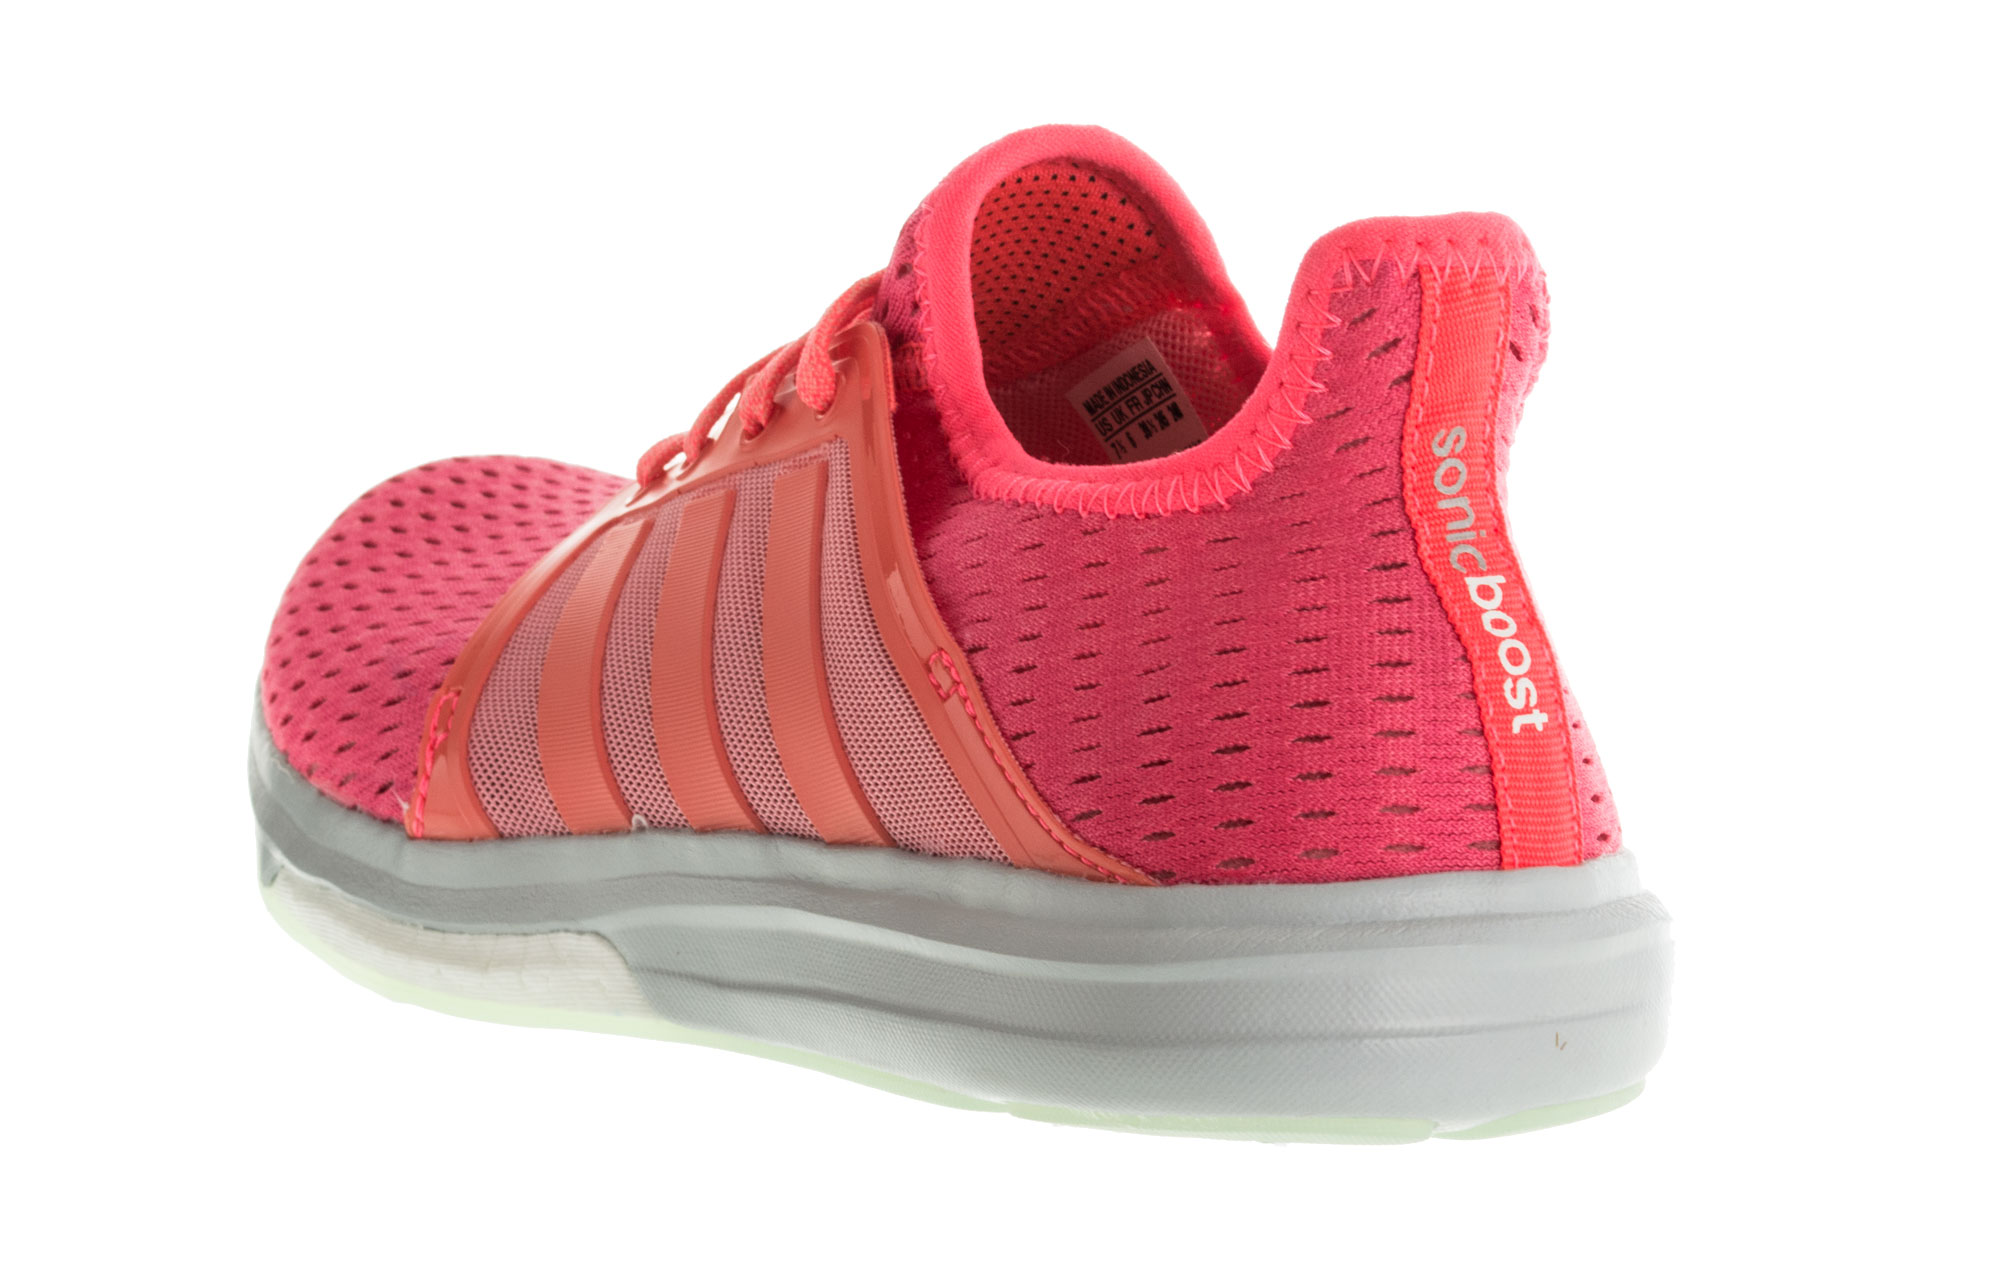 buy popular dc127 fed95 Adidas Climachill Sonic Boost Womens Running Shoes - Pink